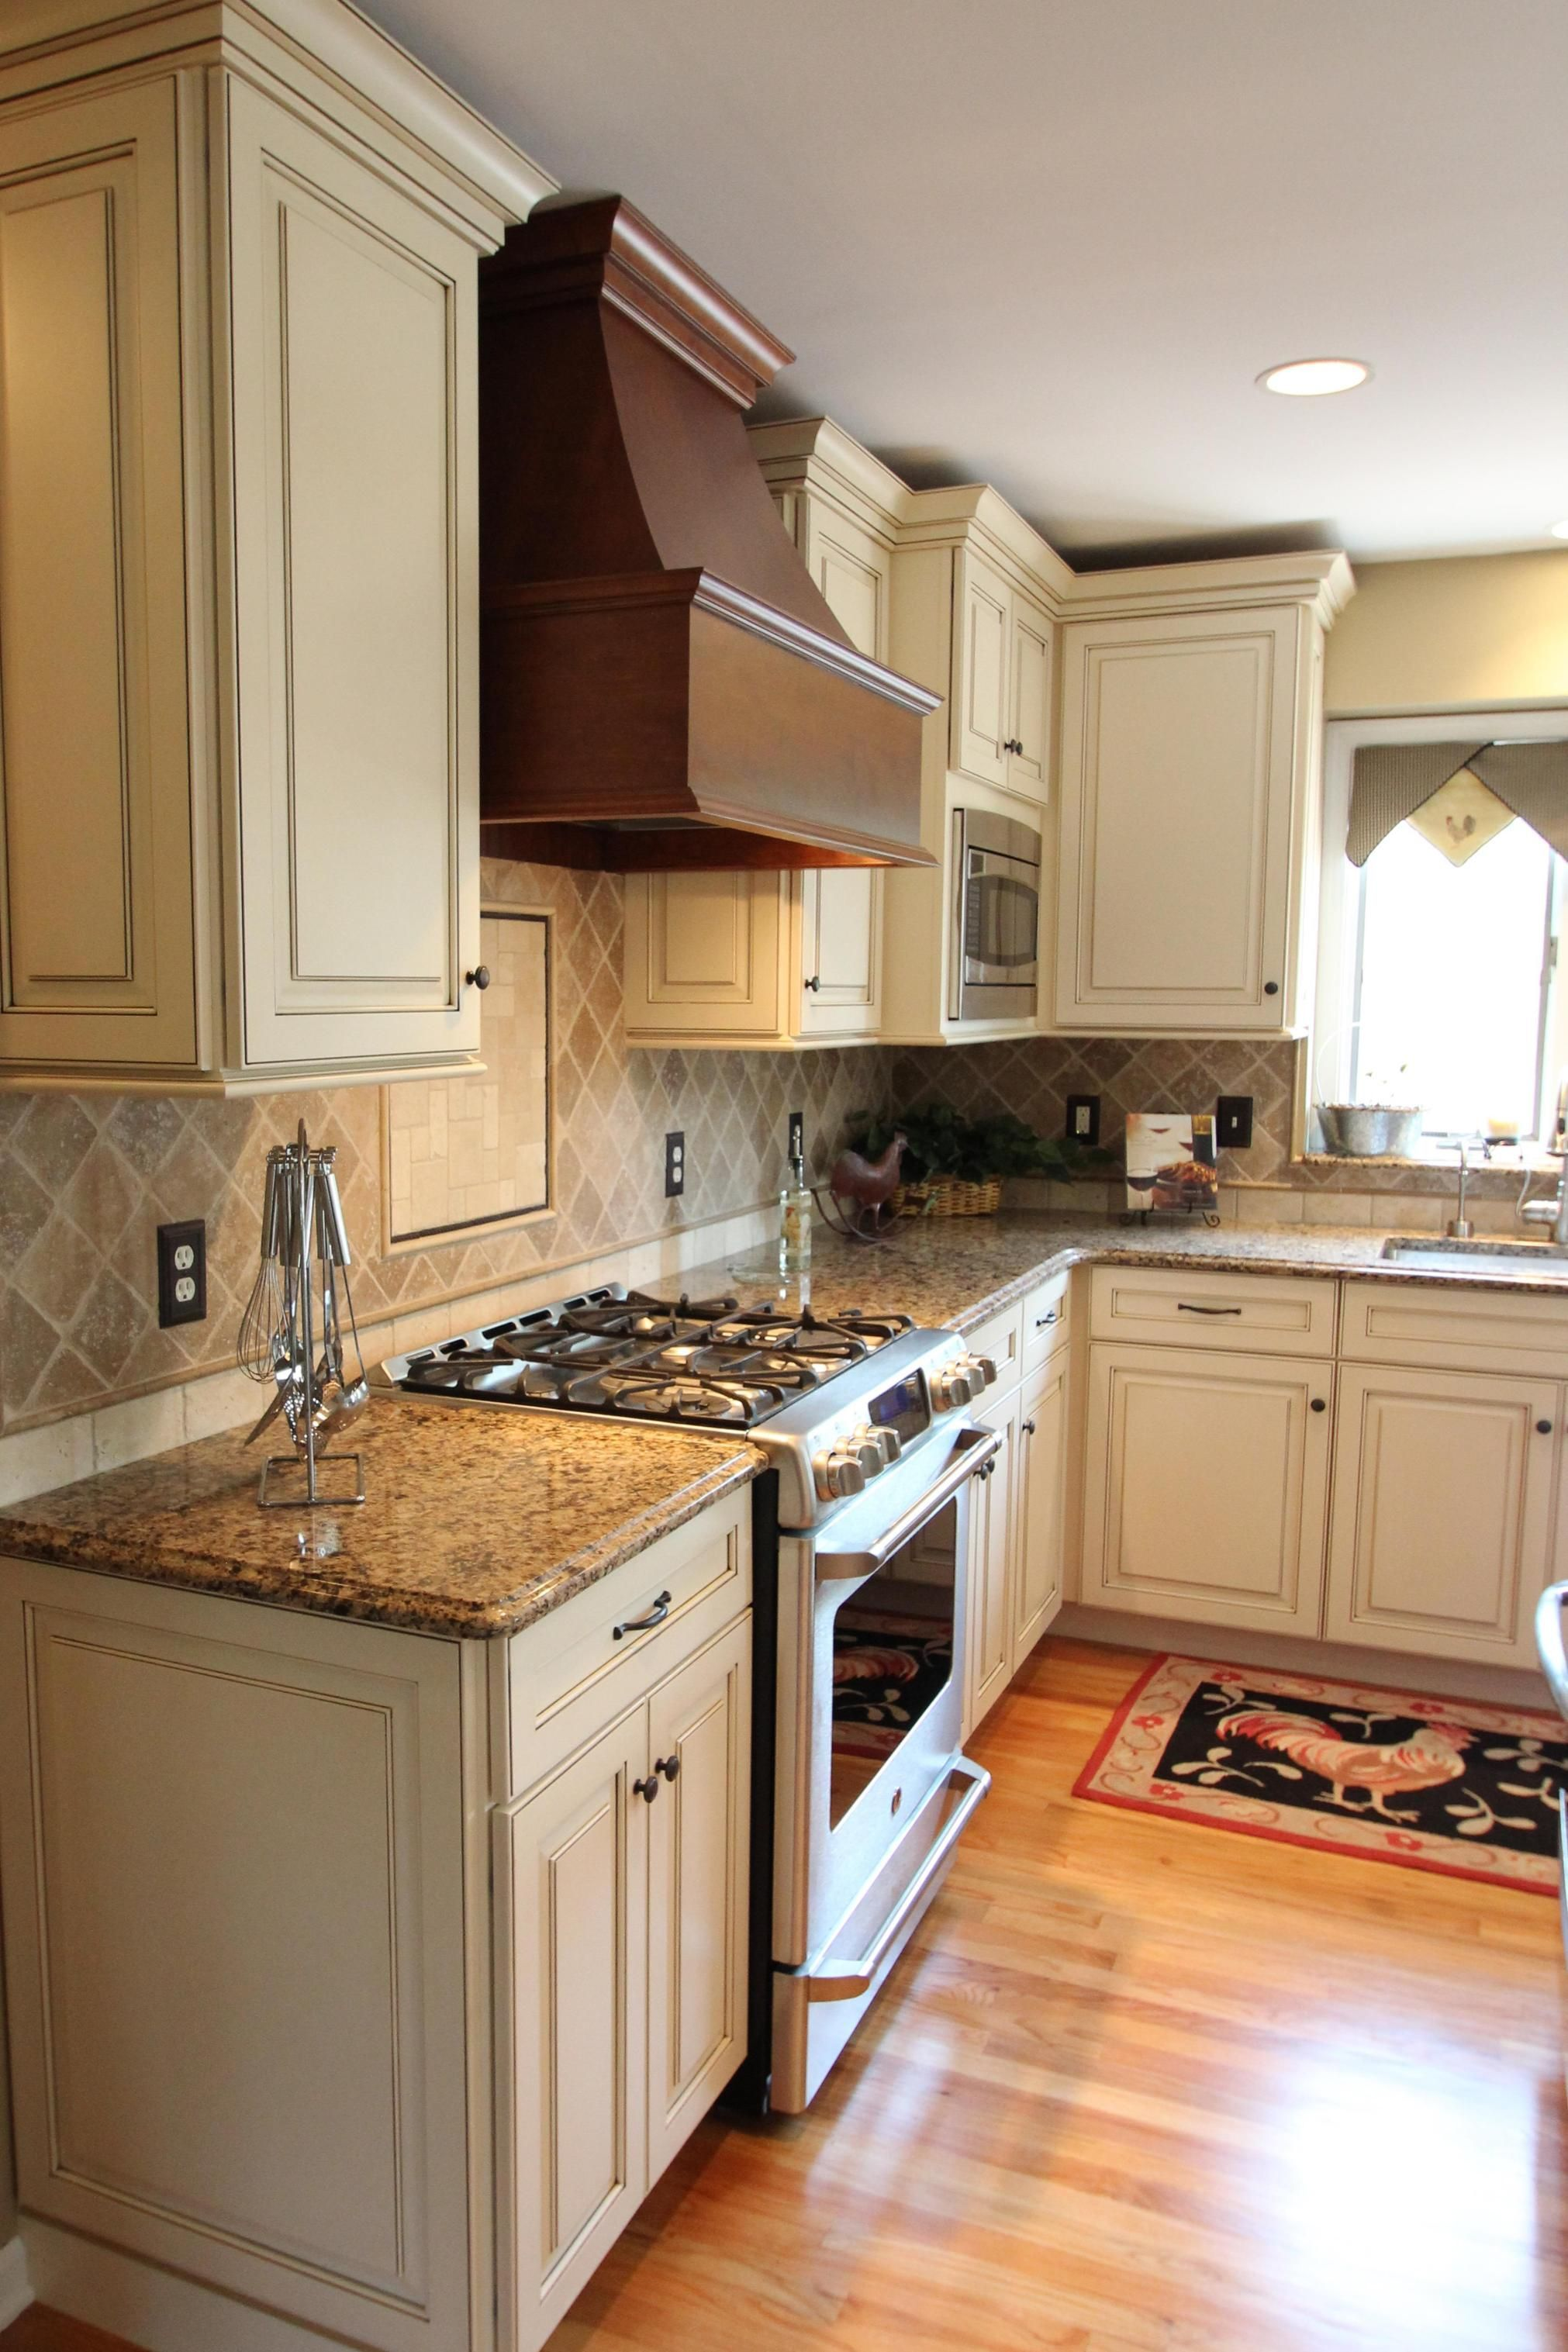 High Quality Conestoga Doors To Fit Every Kitchen And Bathroom Need 23 Highqualitybathrooms Kitchens Bathrooms Kitchen Cabinets Kitchen